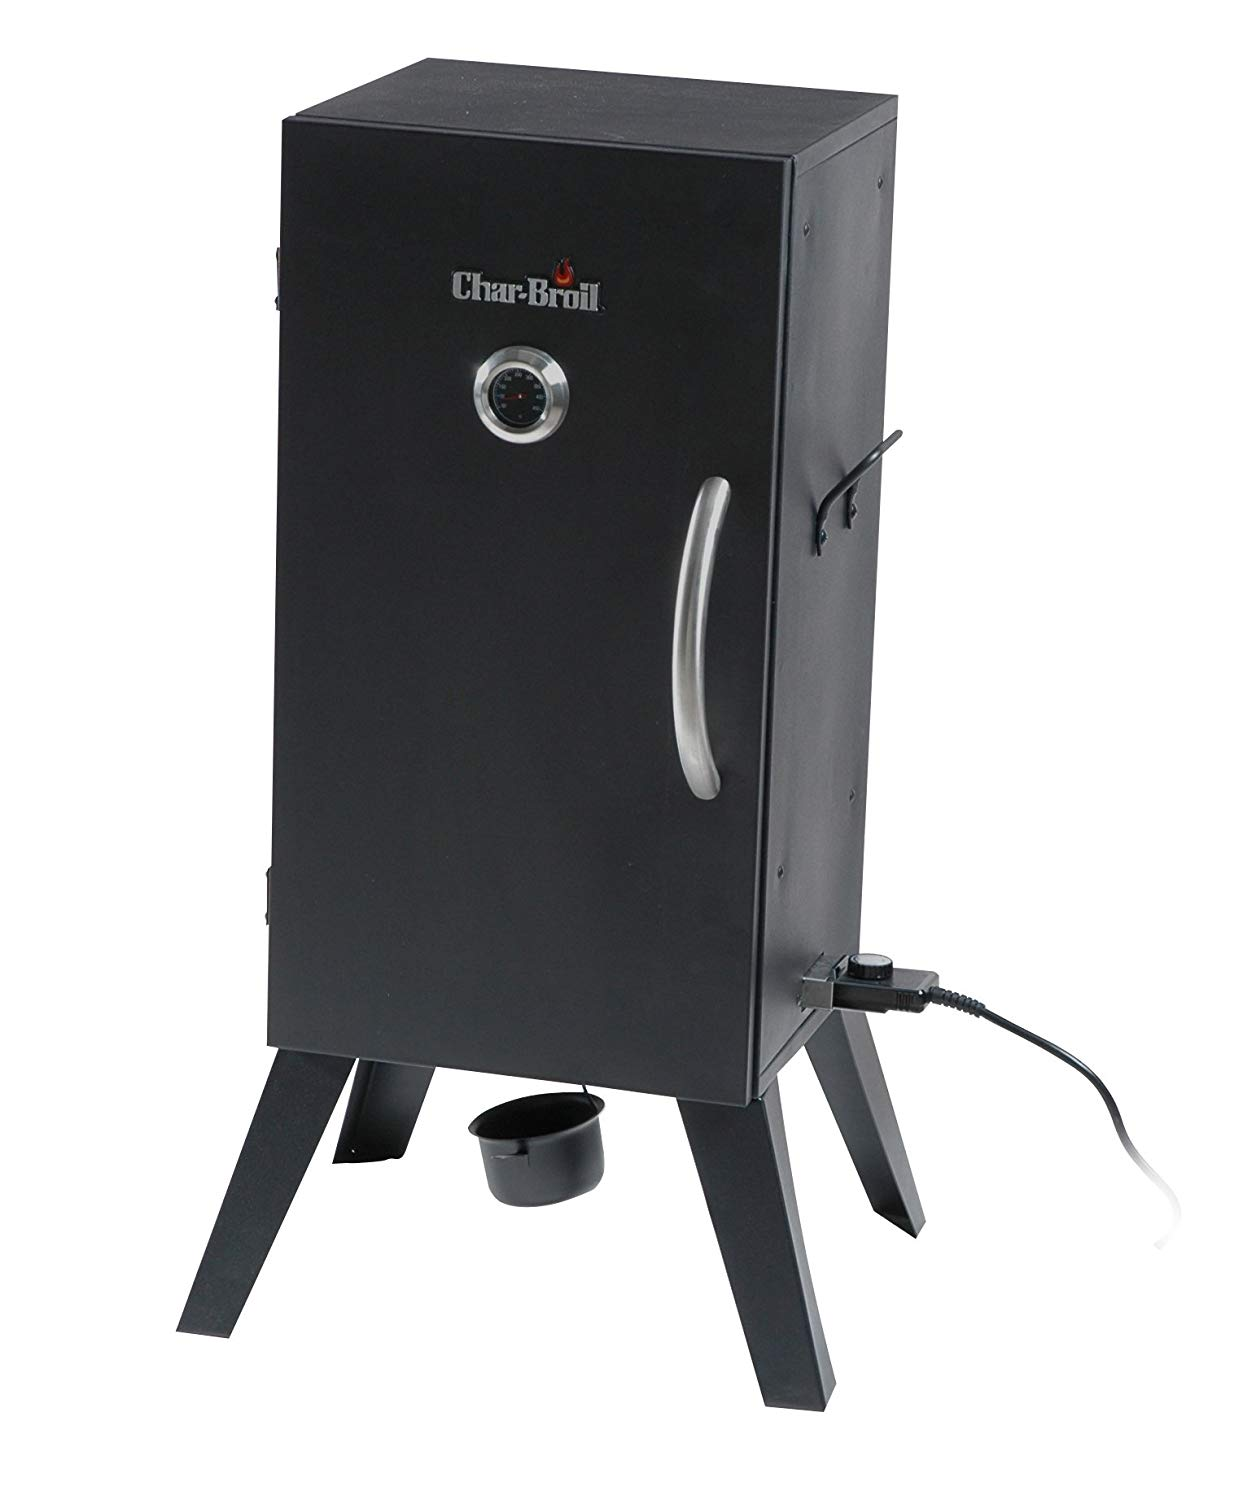 If you want the best smoker for the money, have a look at the Char-Broil Vertical Grill.